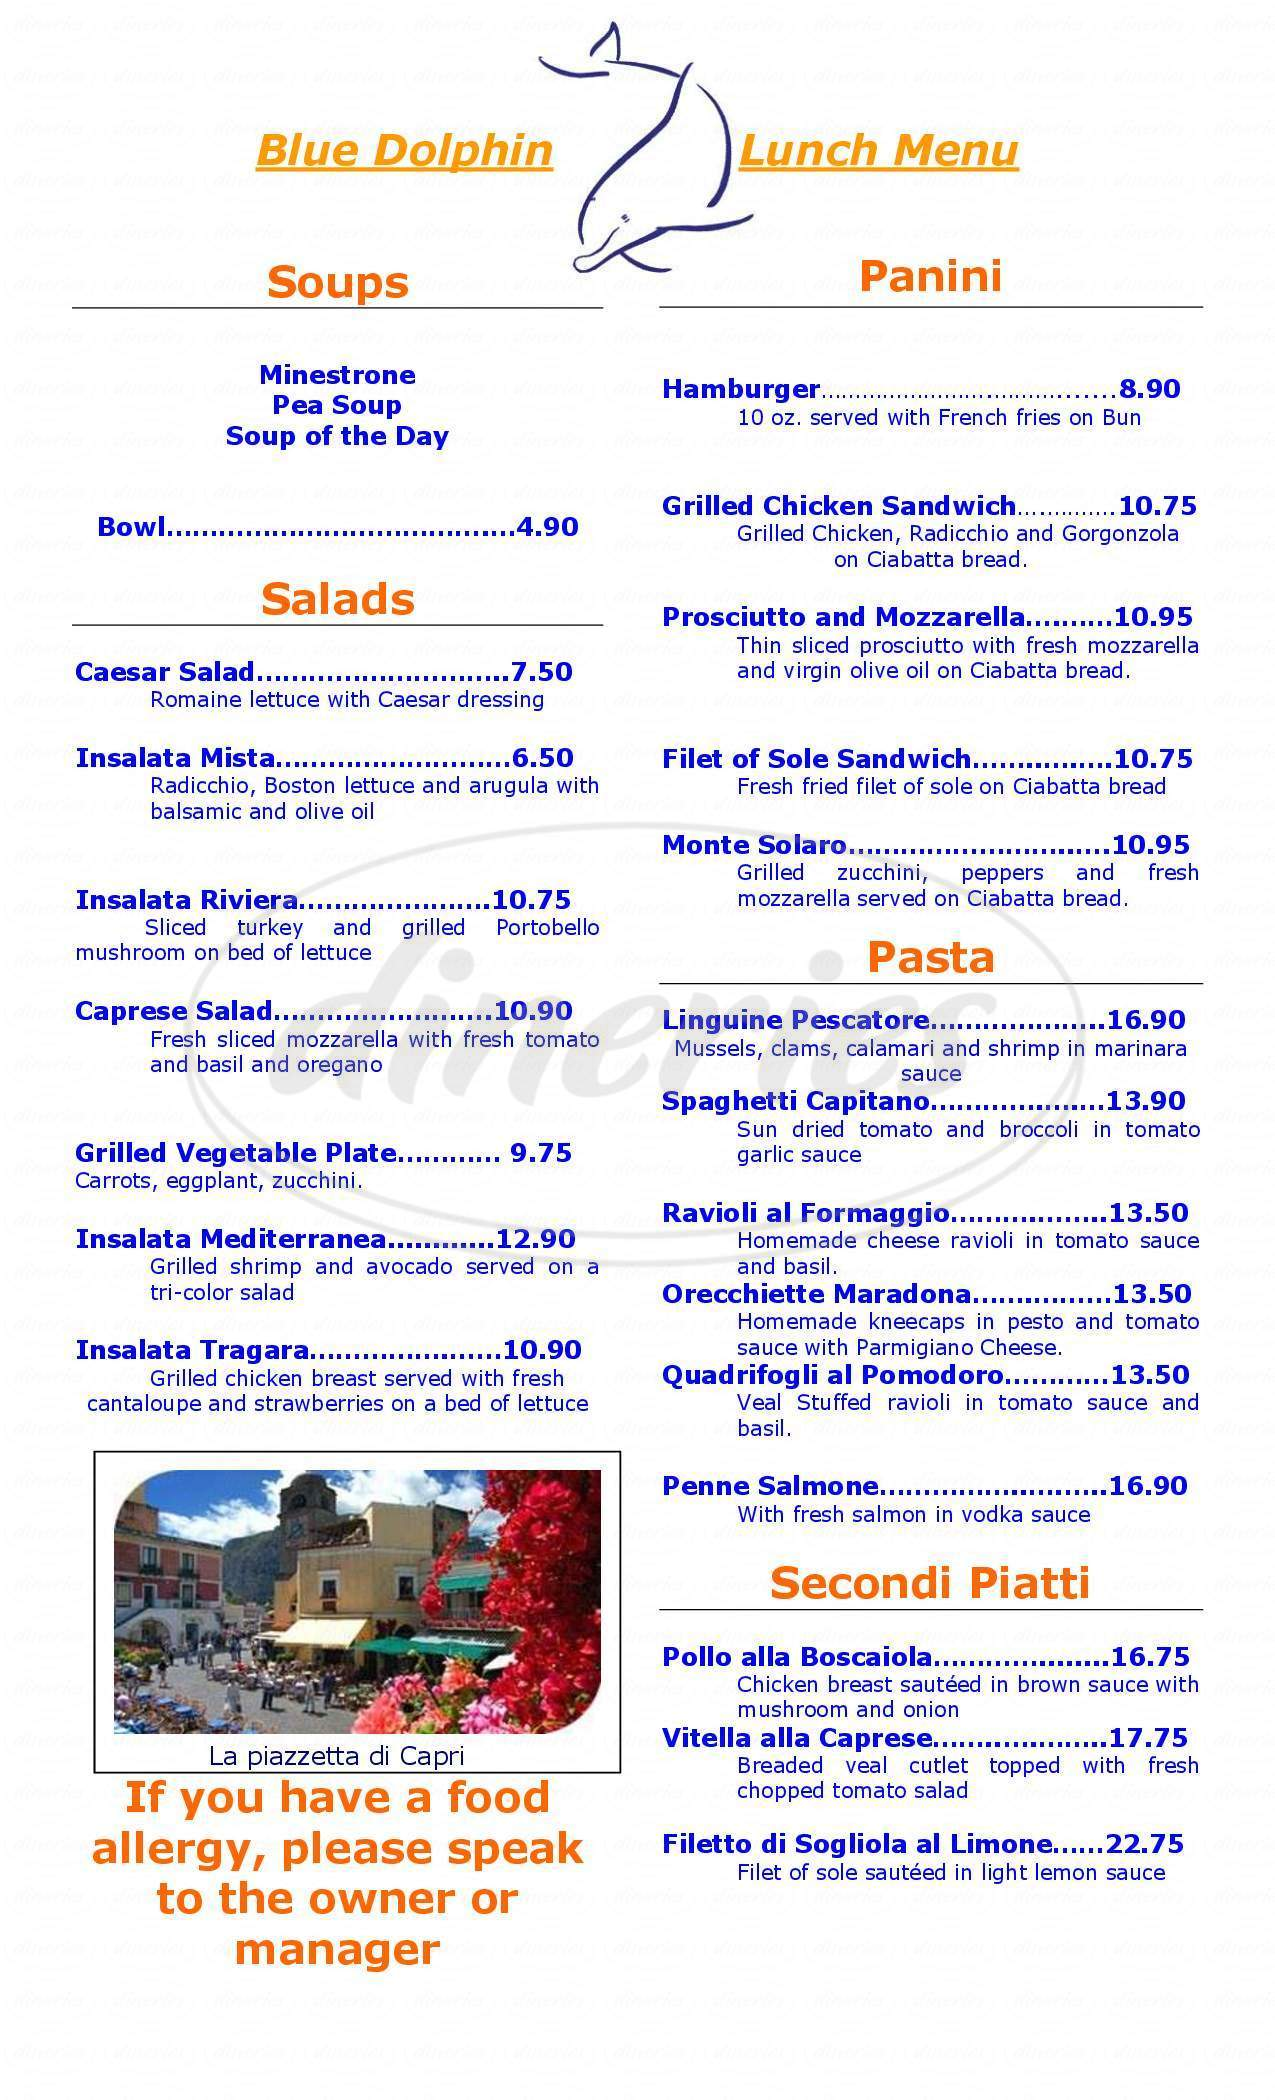 menu for Blue Dolphin Restaurant